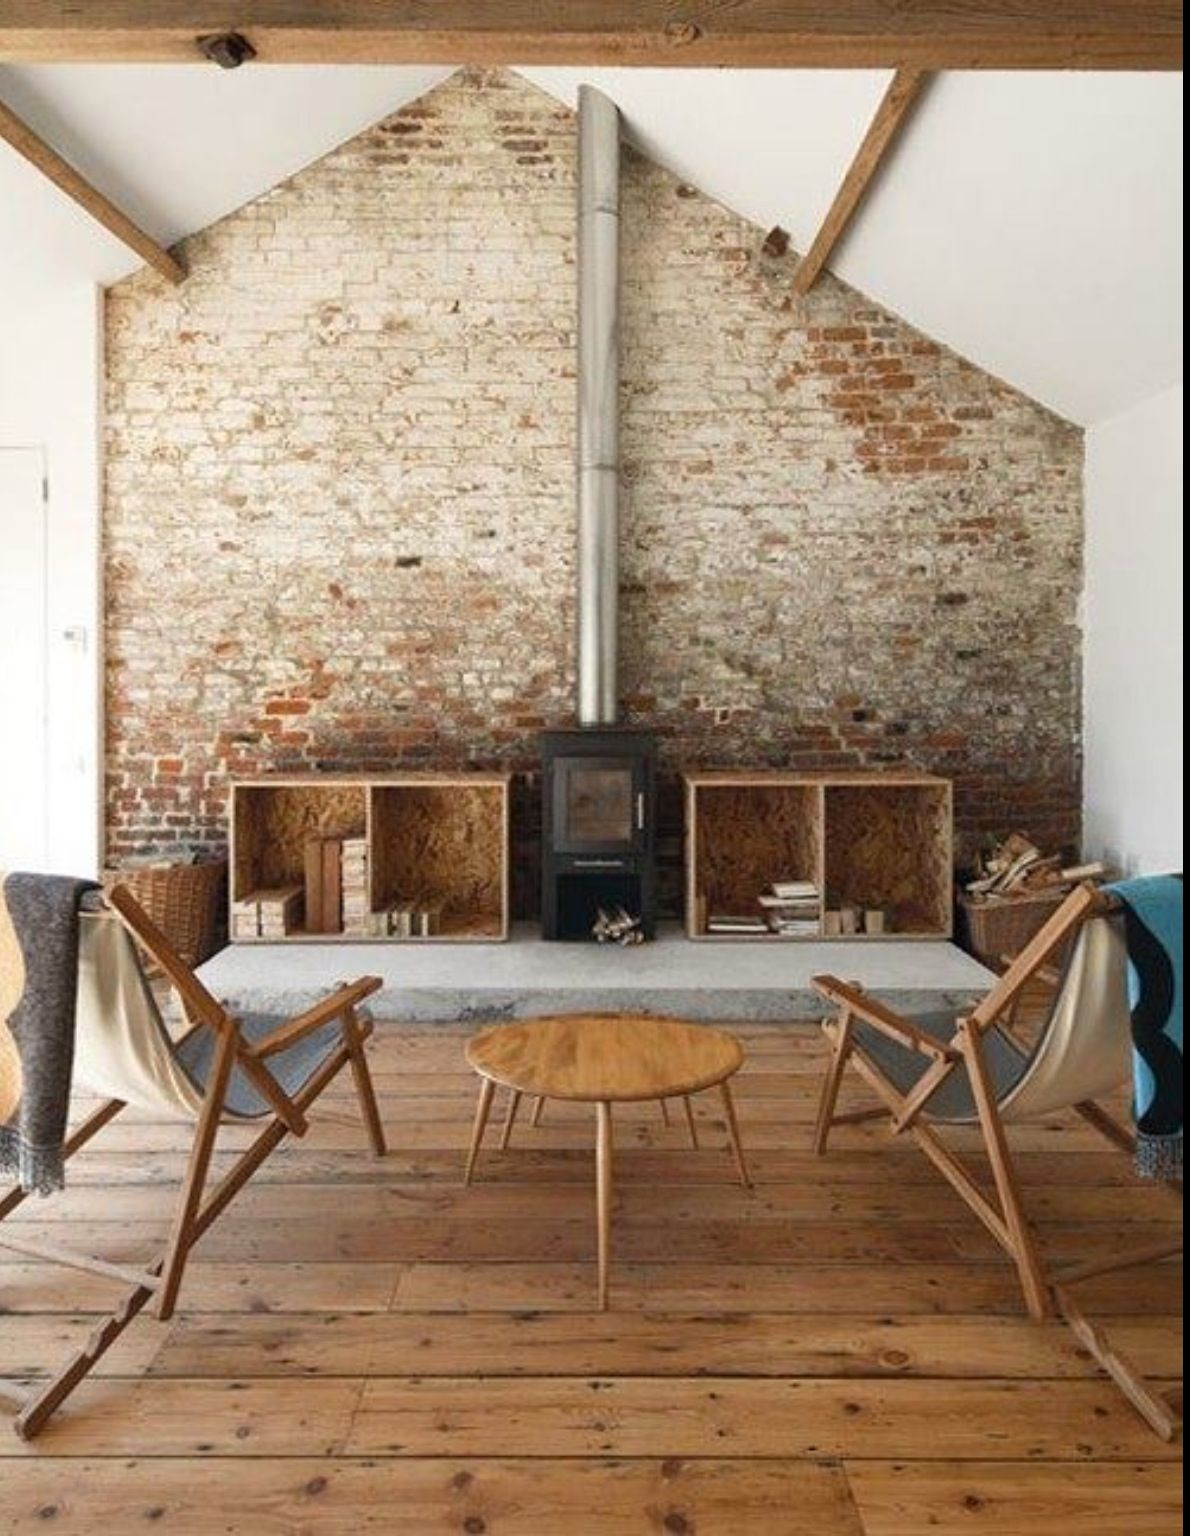 Rustic Living Room By Studio Sofield By Architectural: Rustic Living Room With Character Exposed Brick Focal